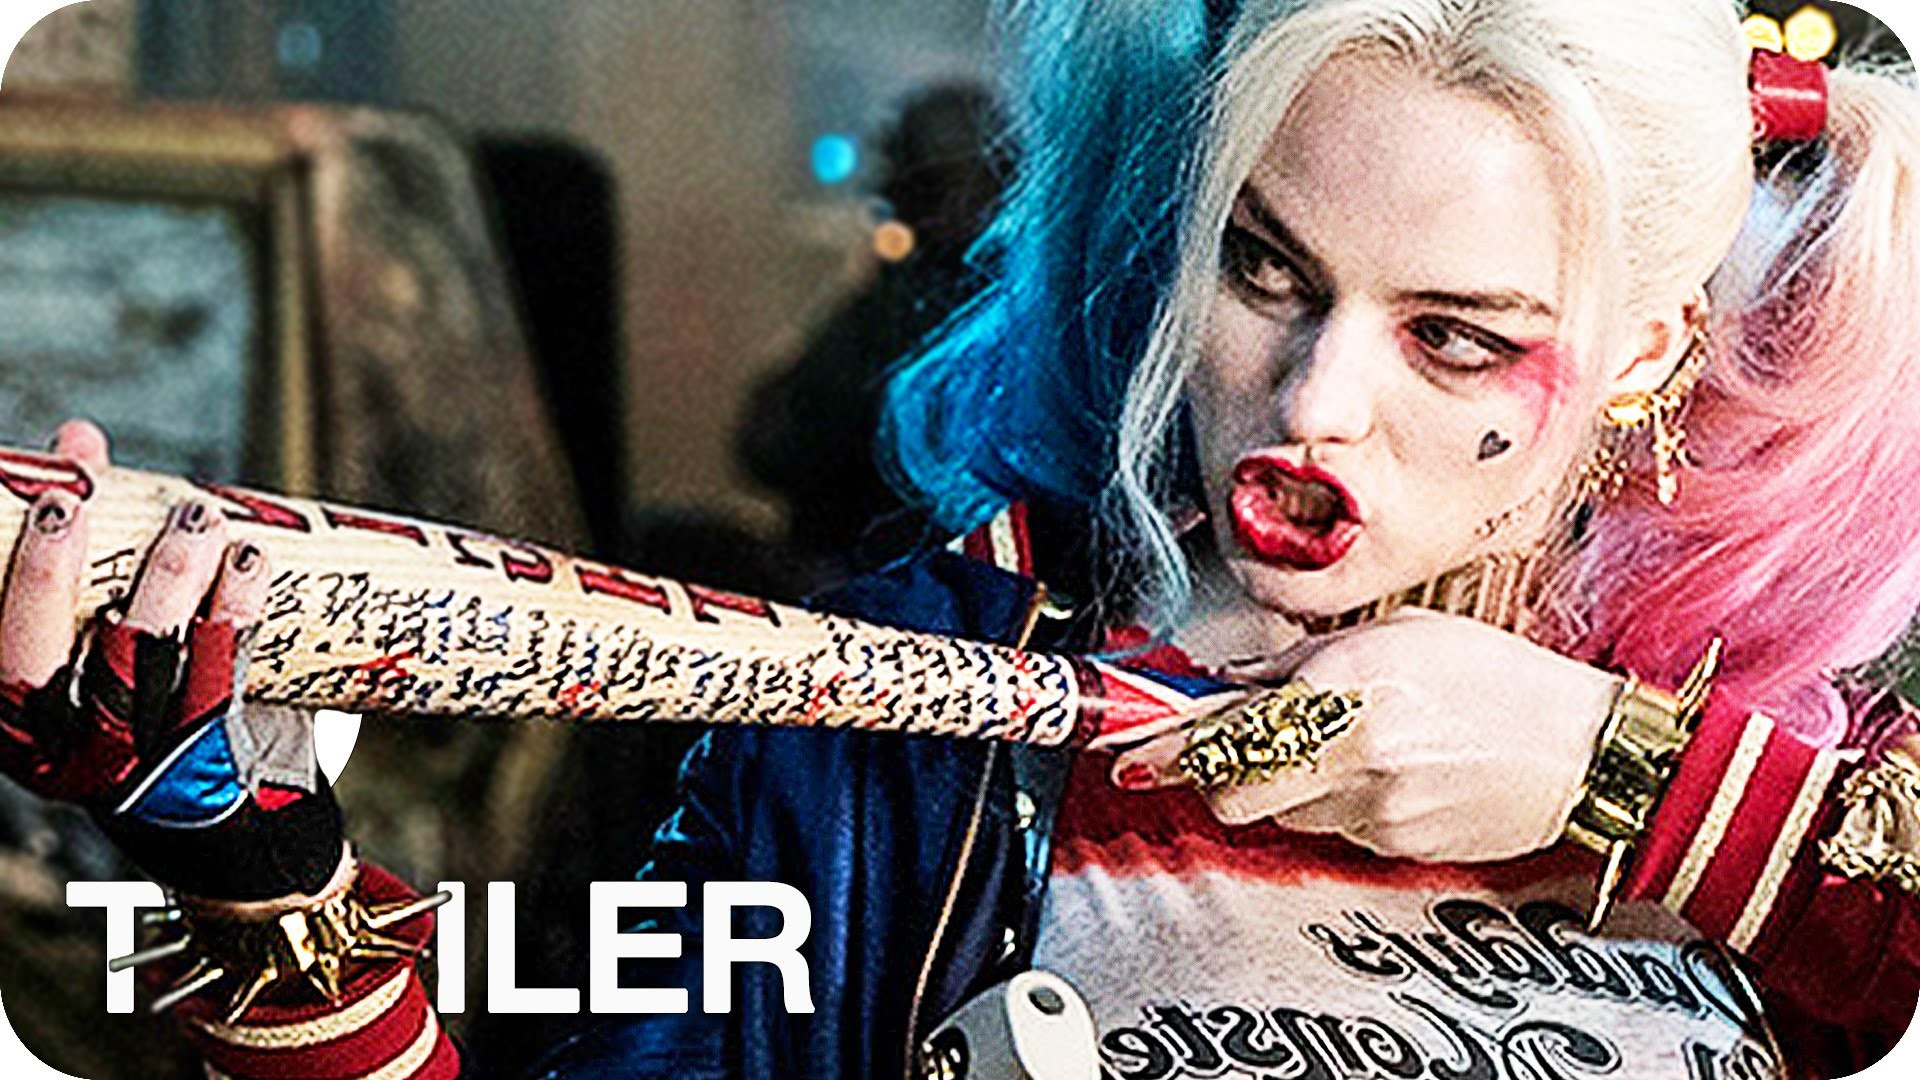 Margot Robbie Suicide Squad Wallpapers Posted By Ethan Simpson